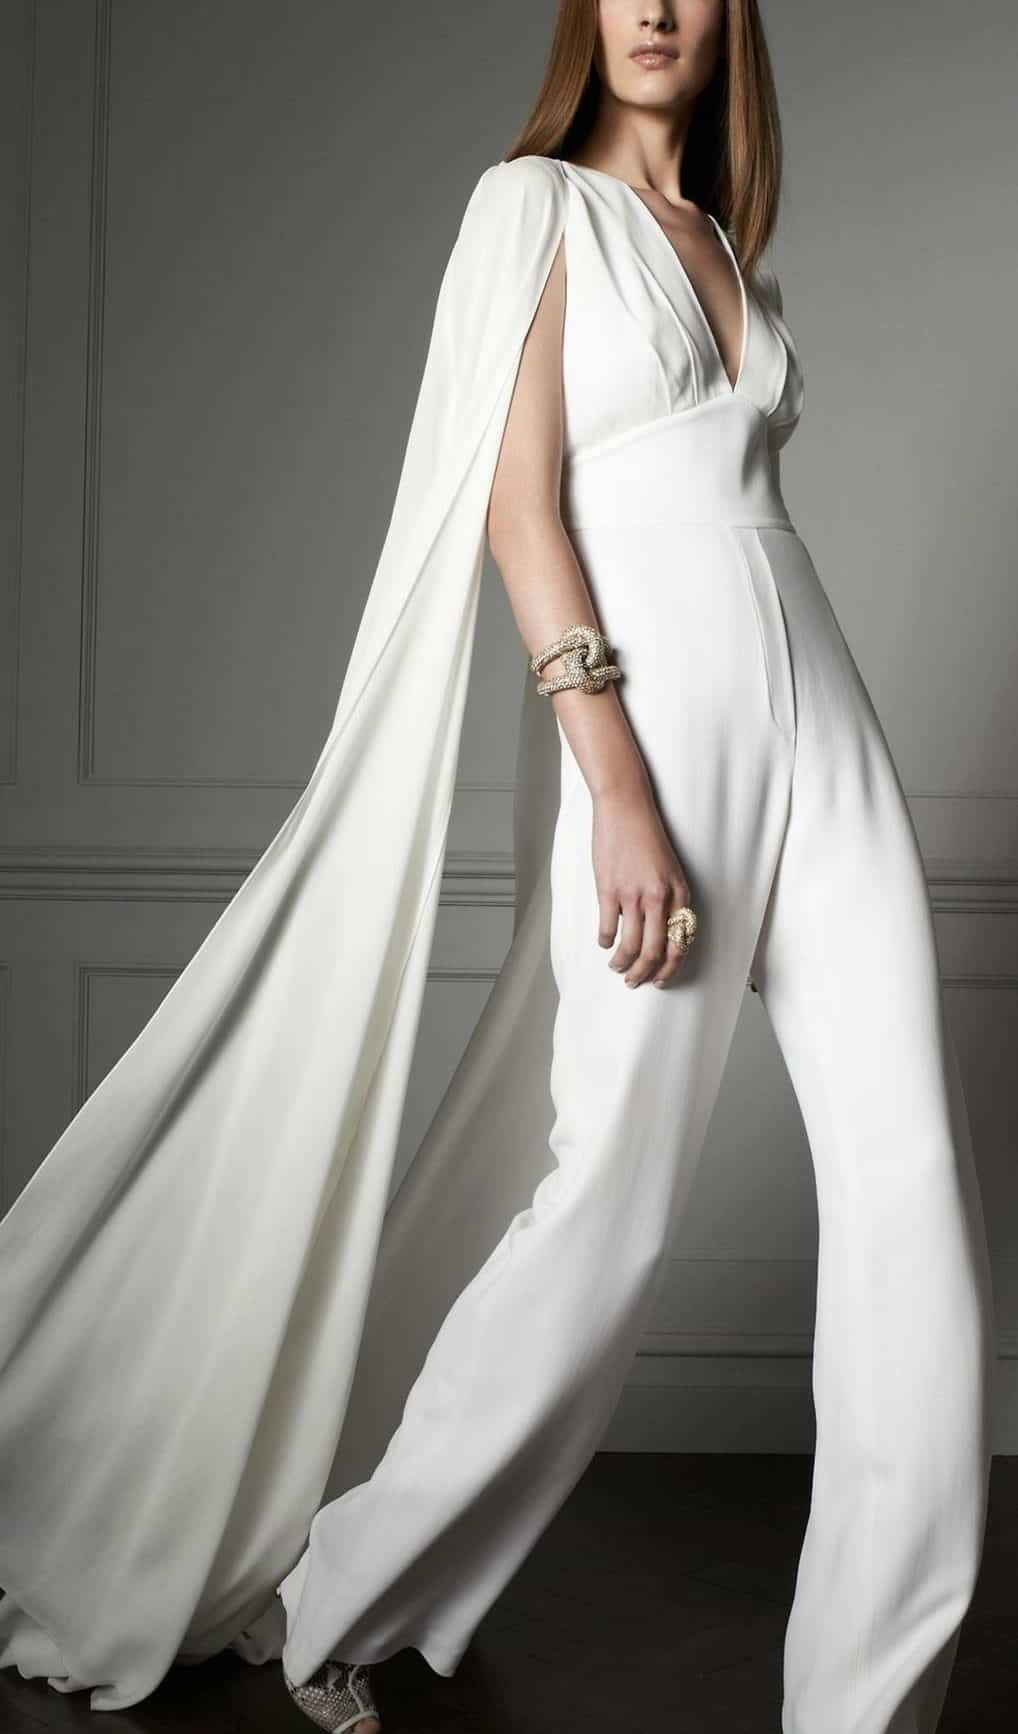 wedding dress jumpsuit with tail